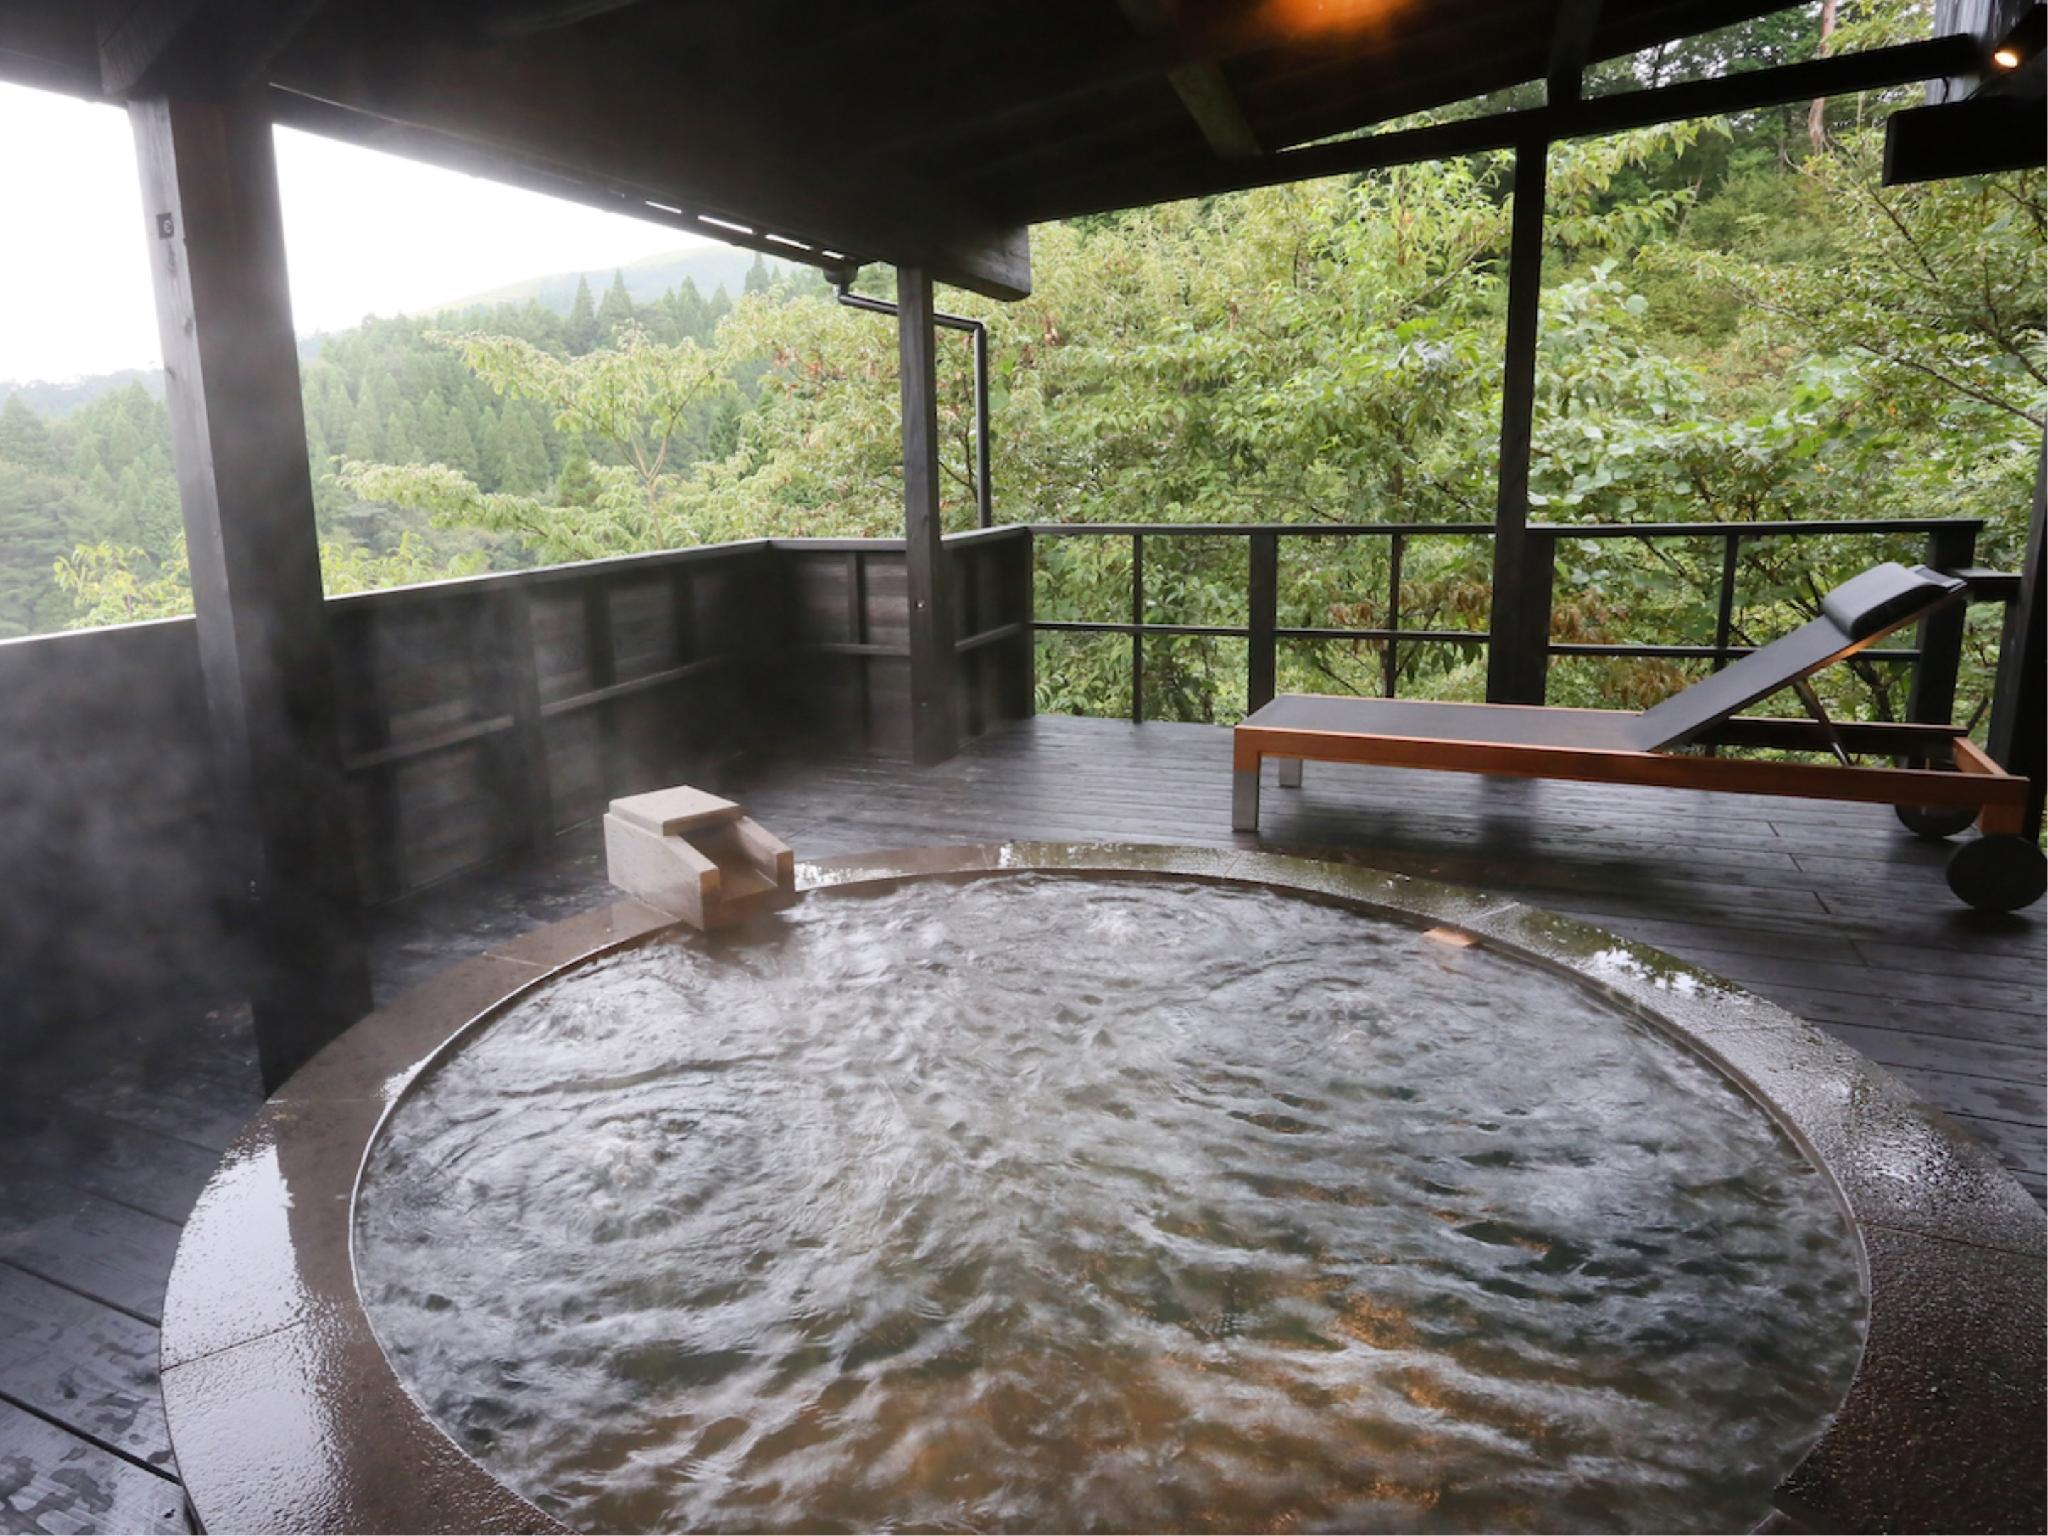 有明 独立房(和洋式房+露天风吕+围炉裏) (Detached Japanese/Western-style Room with Open-air Bath & Irori Hearth (Ariake Type))